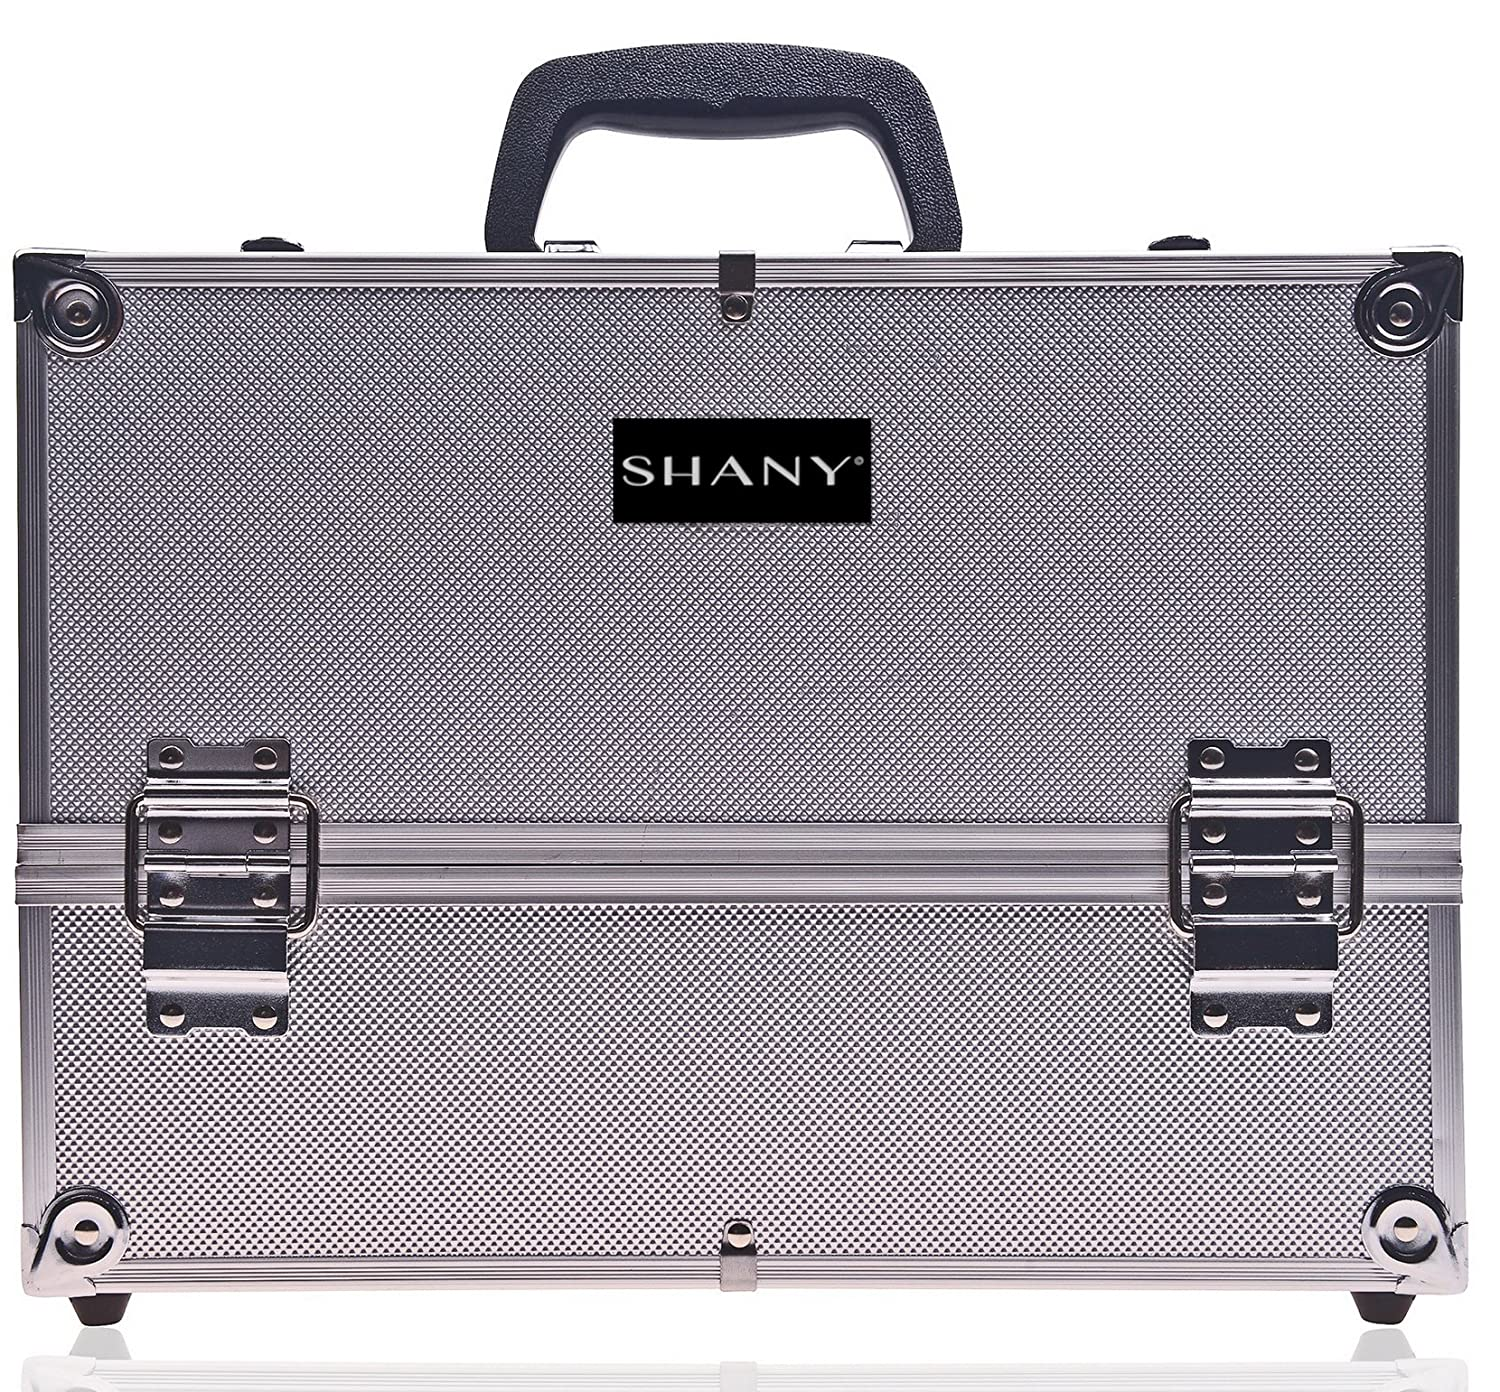 SHANY Essential Pro Makeup Train Case with Shoulder Strap and Locks - Pink SH-C005-Pink